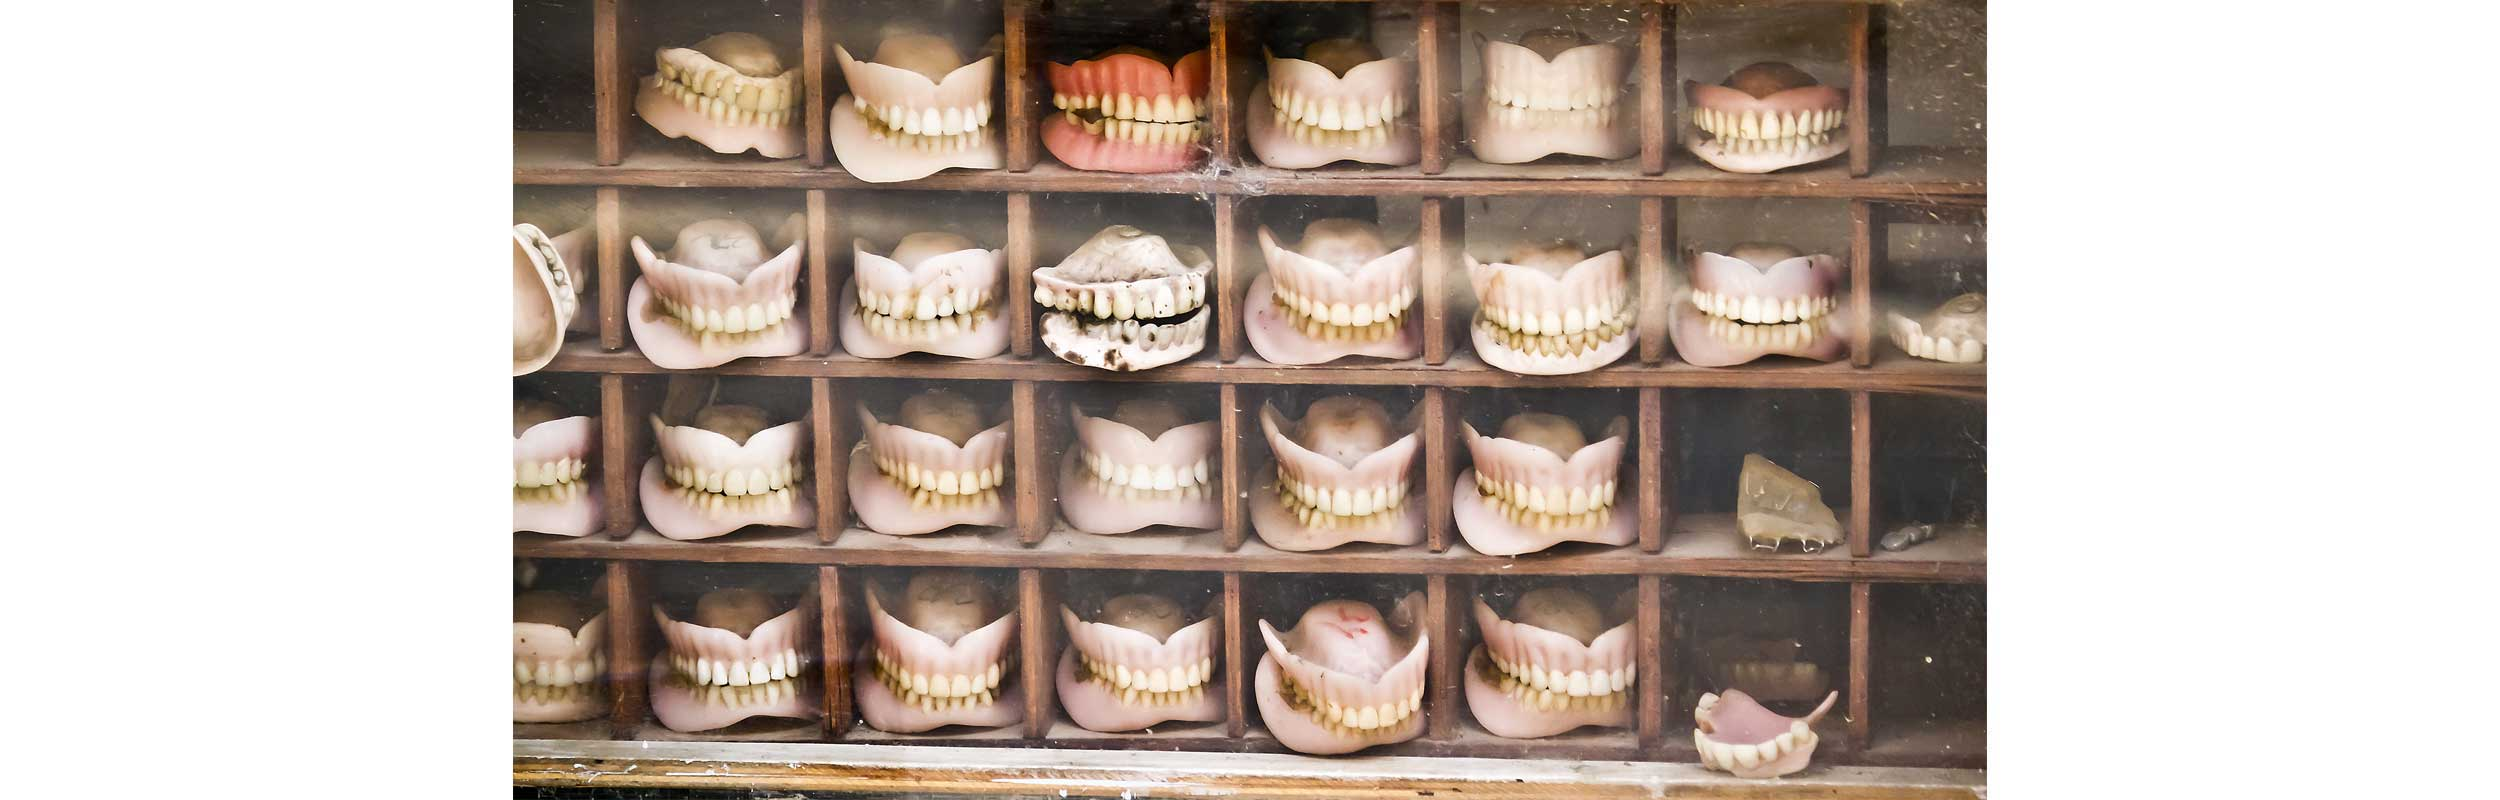 dentures in Nashville, TN